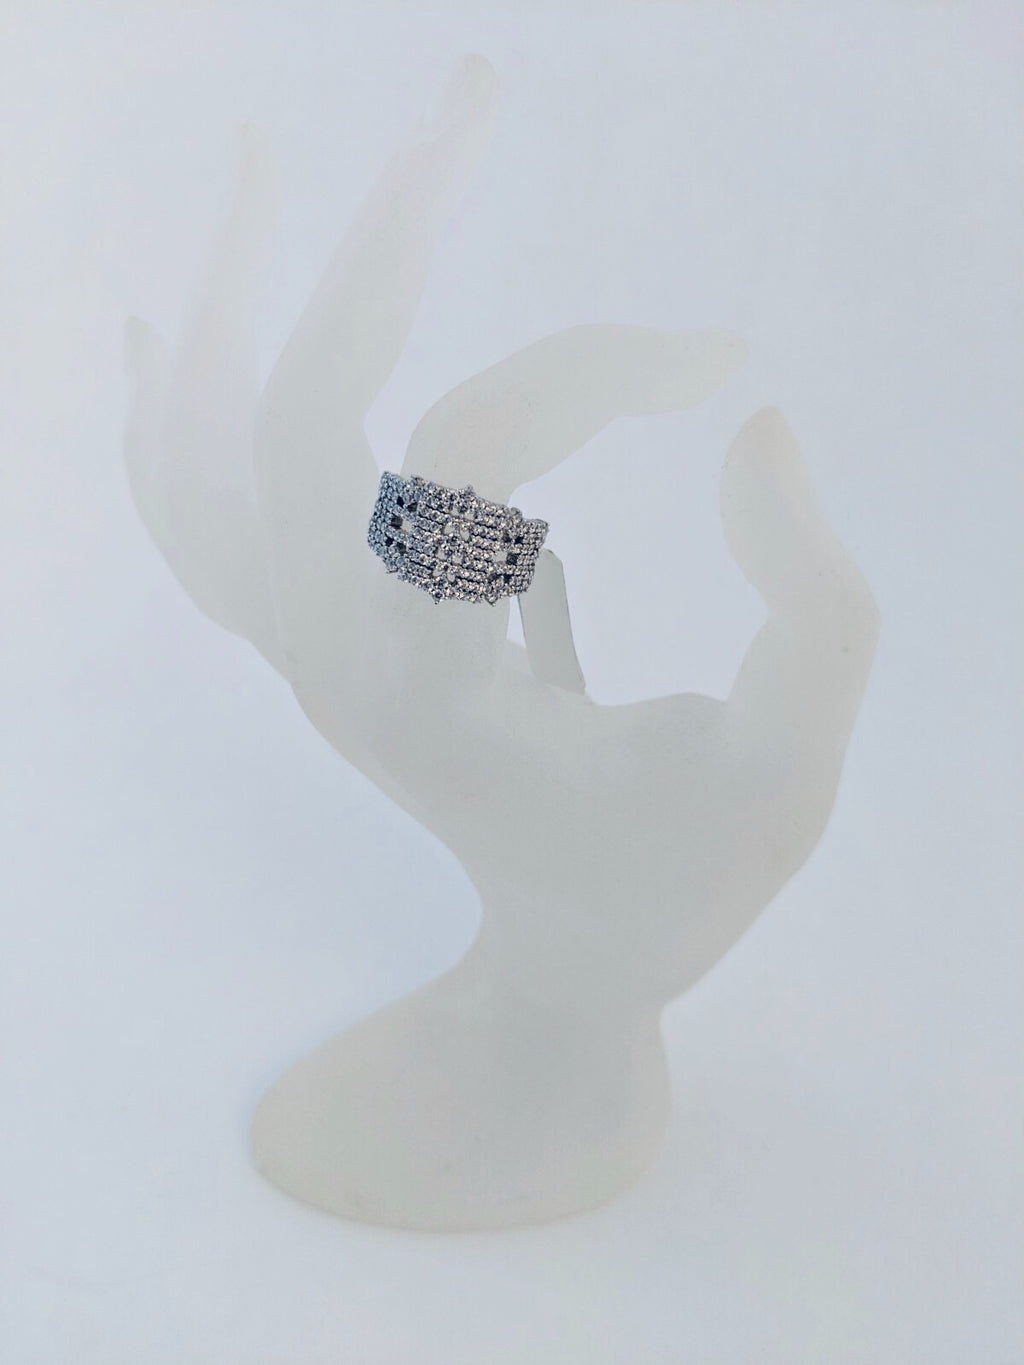 UNIKONCEPT Lifestyle boutique: Ring designed by Adamar that features clear crystals cluster with a sterling silver base